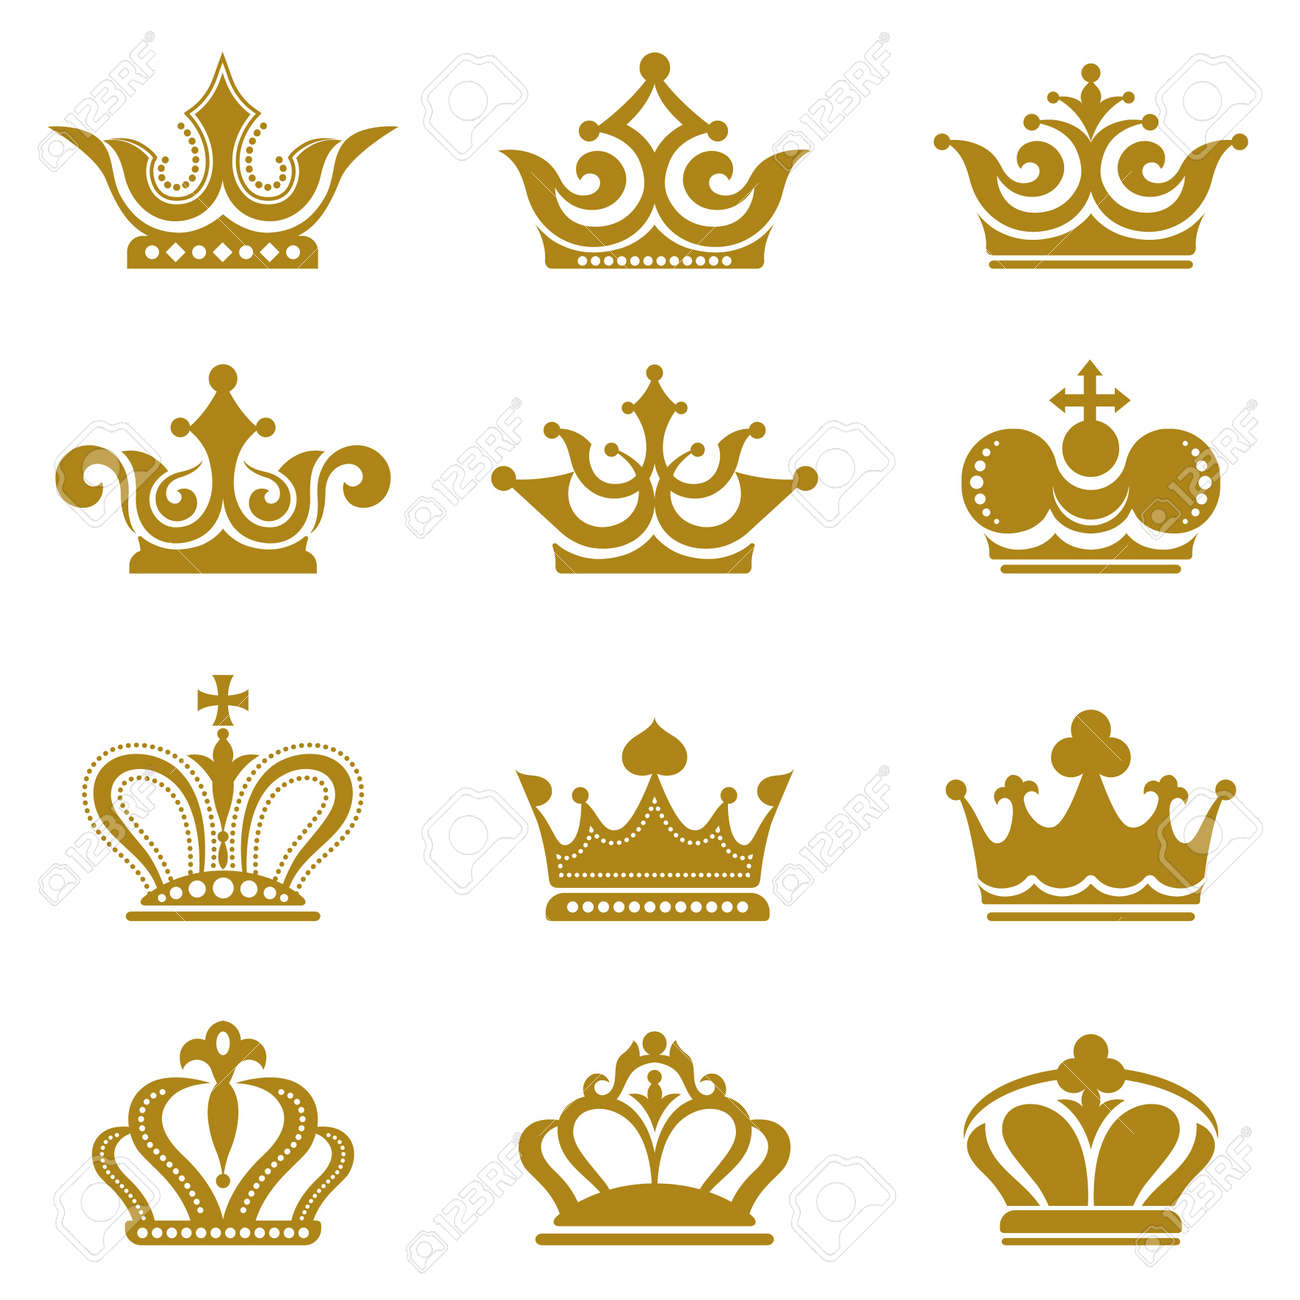 Crown collection - 22065884